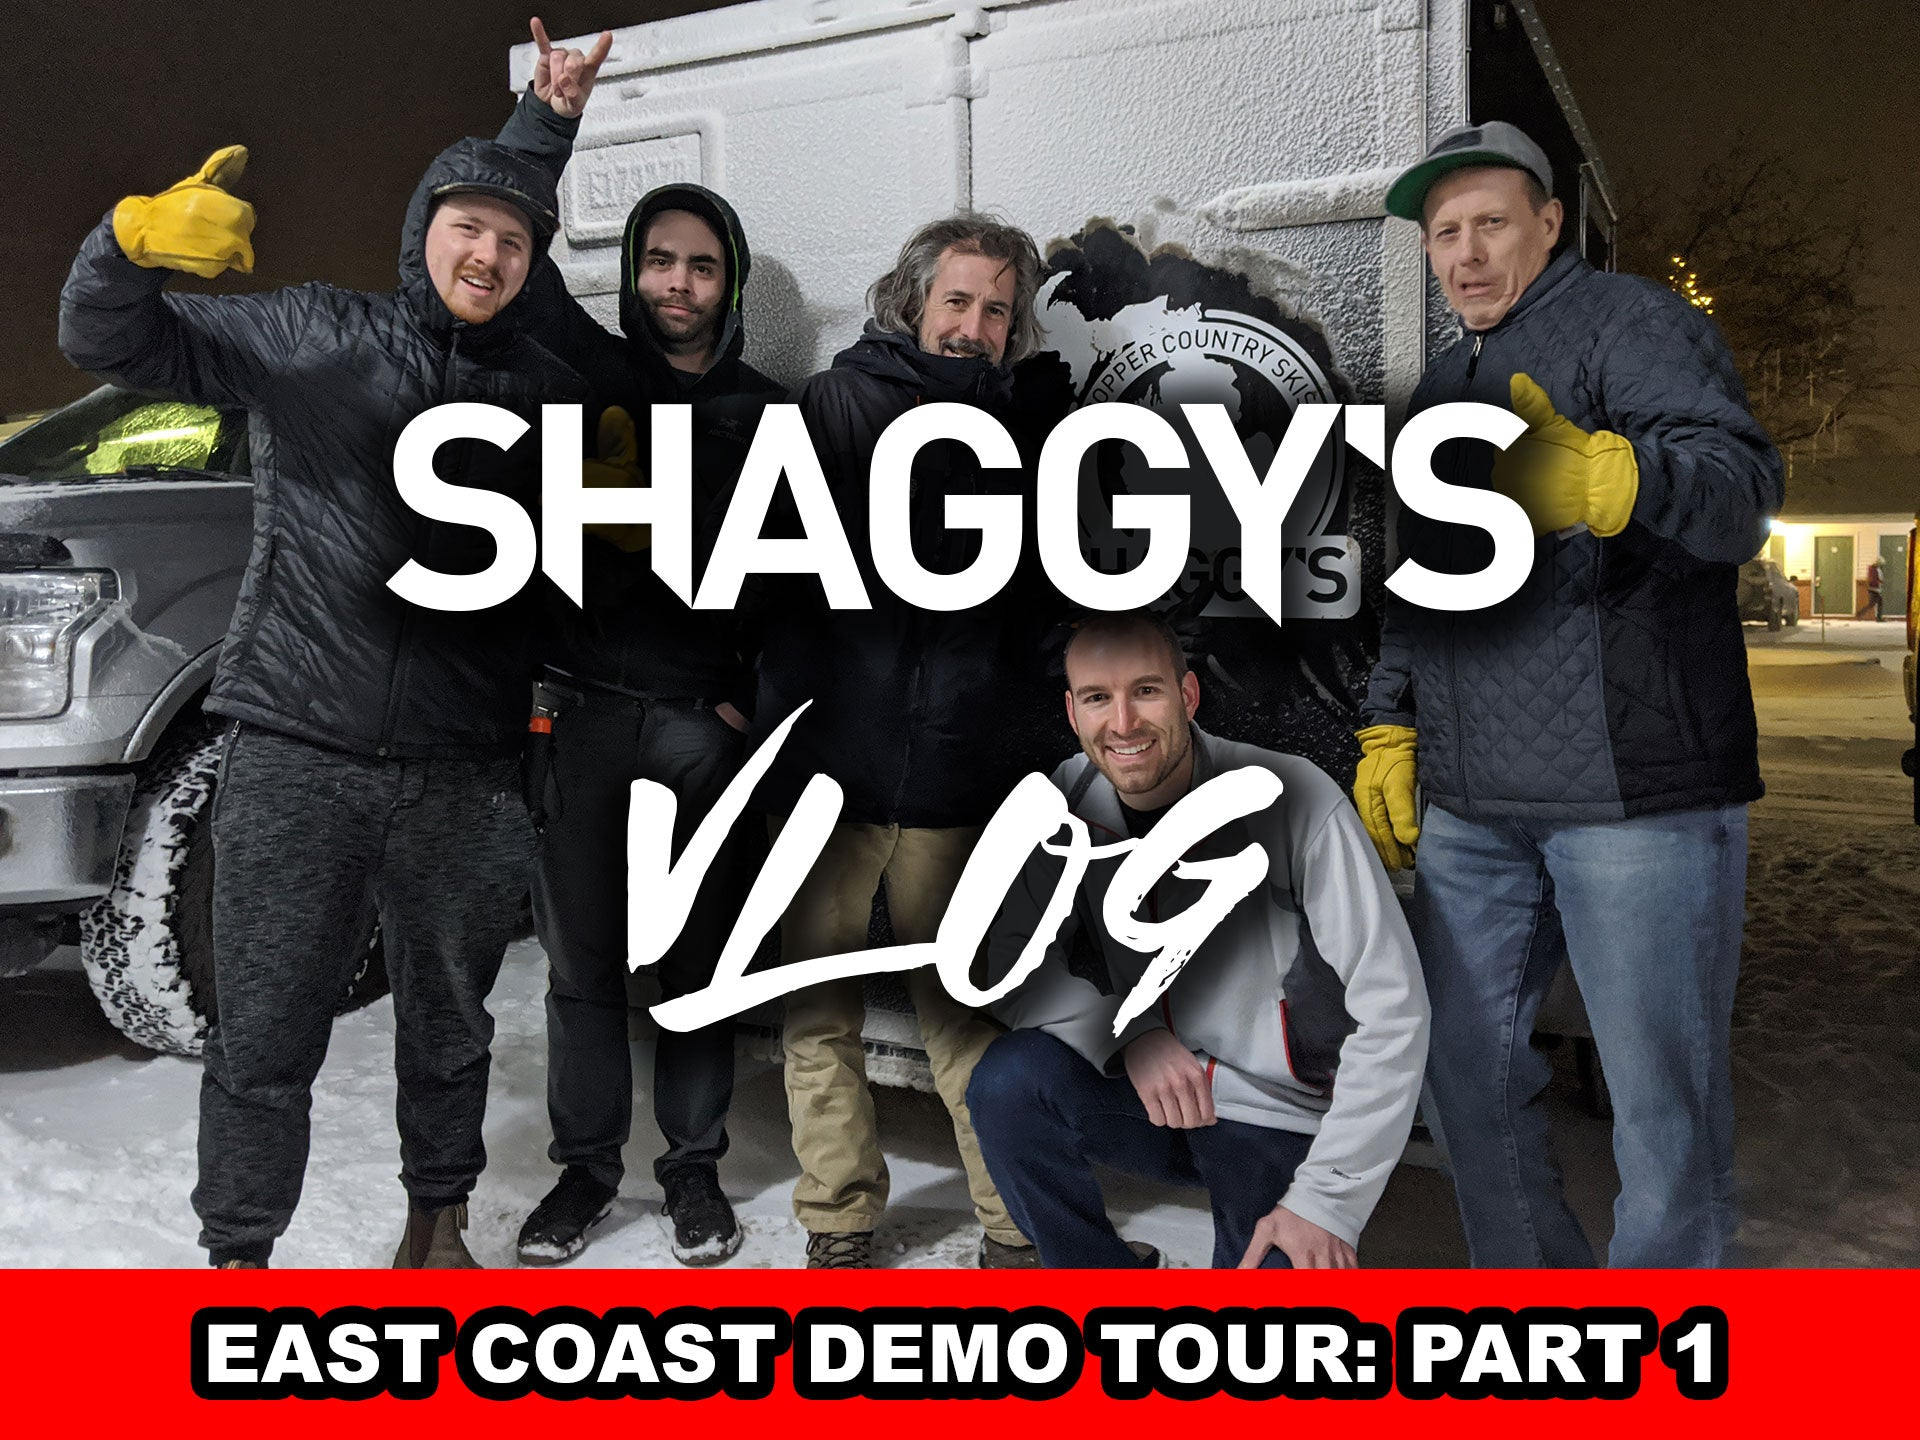 VLOG 012 - East Coast Demo Tour: Part 1